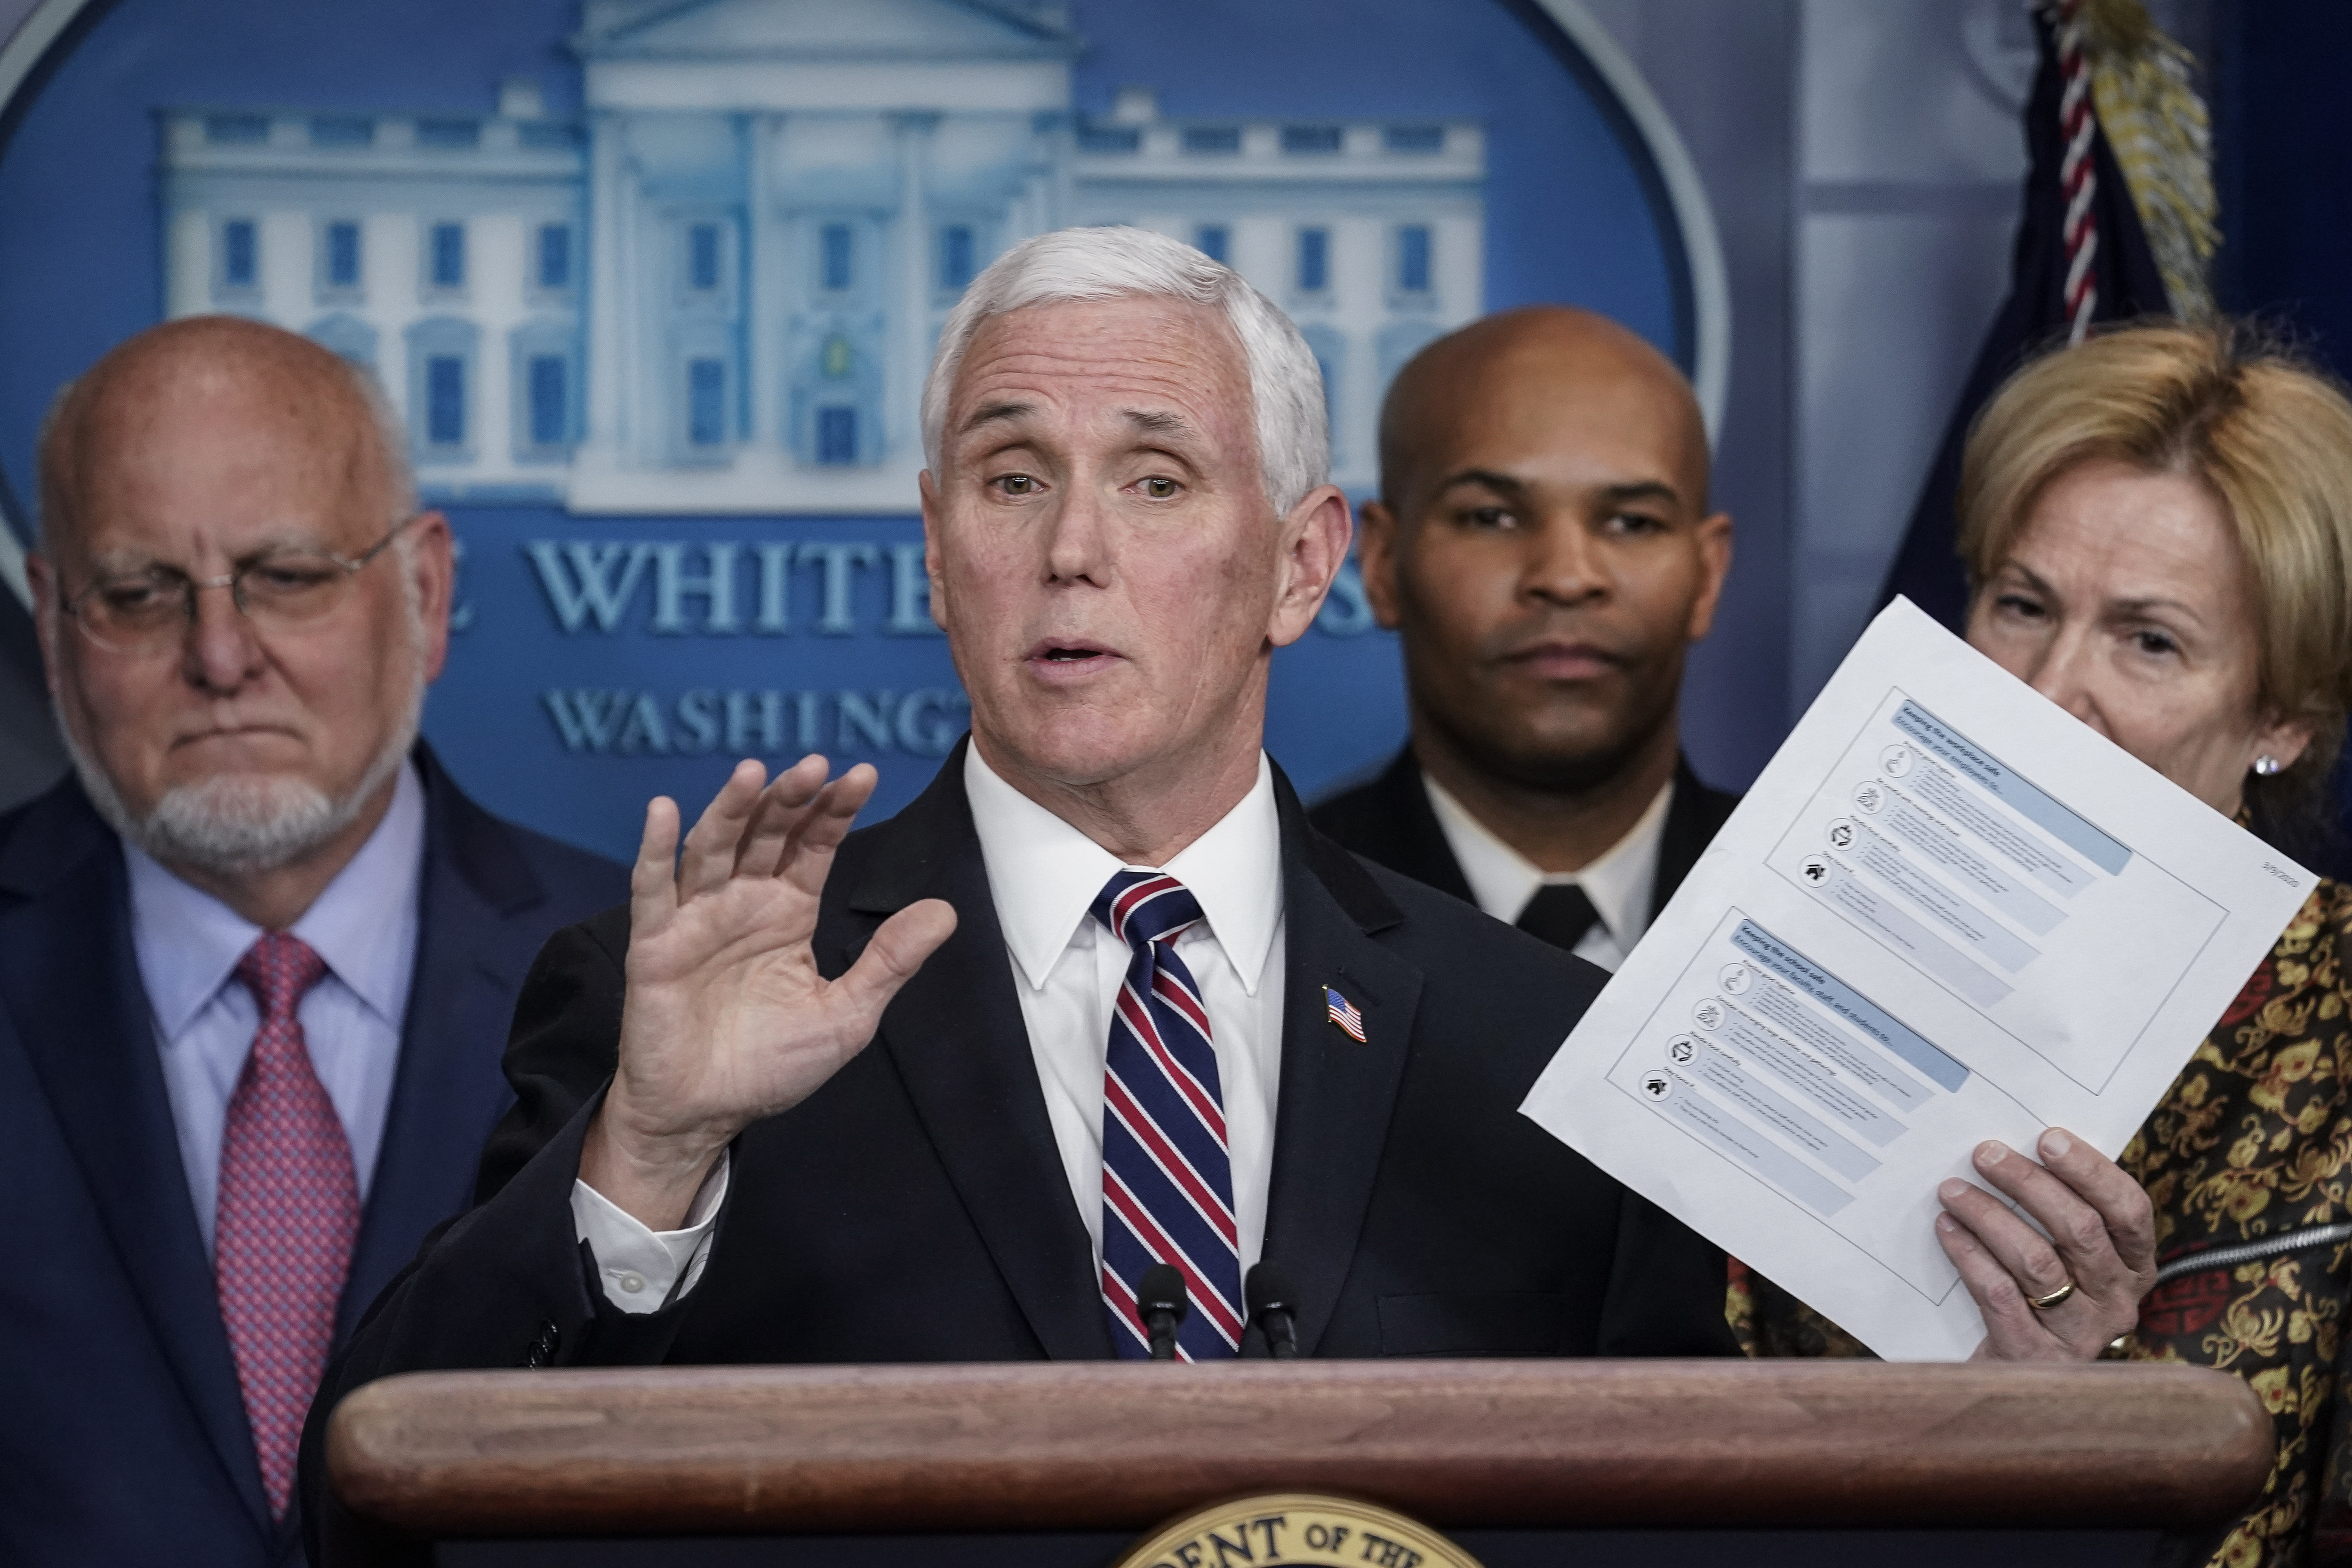 WASHINGTON, DC - MARCH 09: U.S. Vice President Mike Pence holds up a copy of community health guidelines during a press briefing with members of the White House Coronavirus Task Force team in the press briefing room of the White House March 9, 2020 in Washington, DC. Also pictured, from L-R, Robert Redfield, Director of the Centers for Disease Control and Prevention, U.S. Surgeon General Dr. Jerome Adams, and task force leader Debbie Birx. President Trump said he will hold a press conference on Tuesday concerning COVID-19 and other topics. (Photo by Drew Angerer/Getty Images)